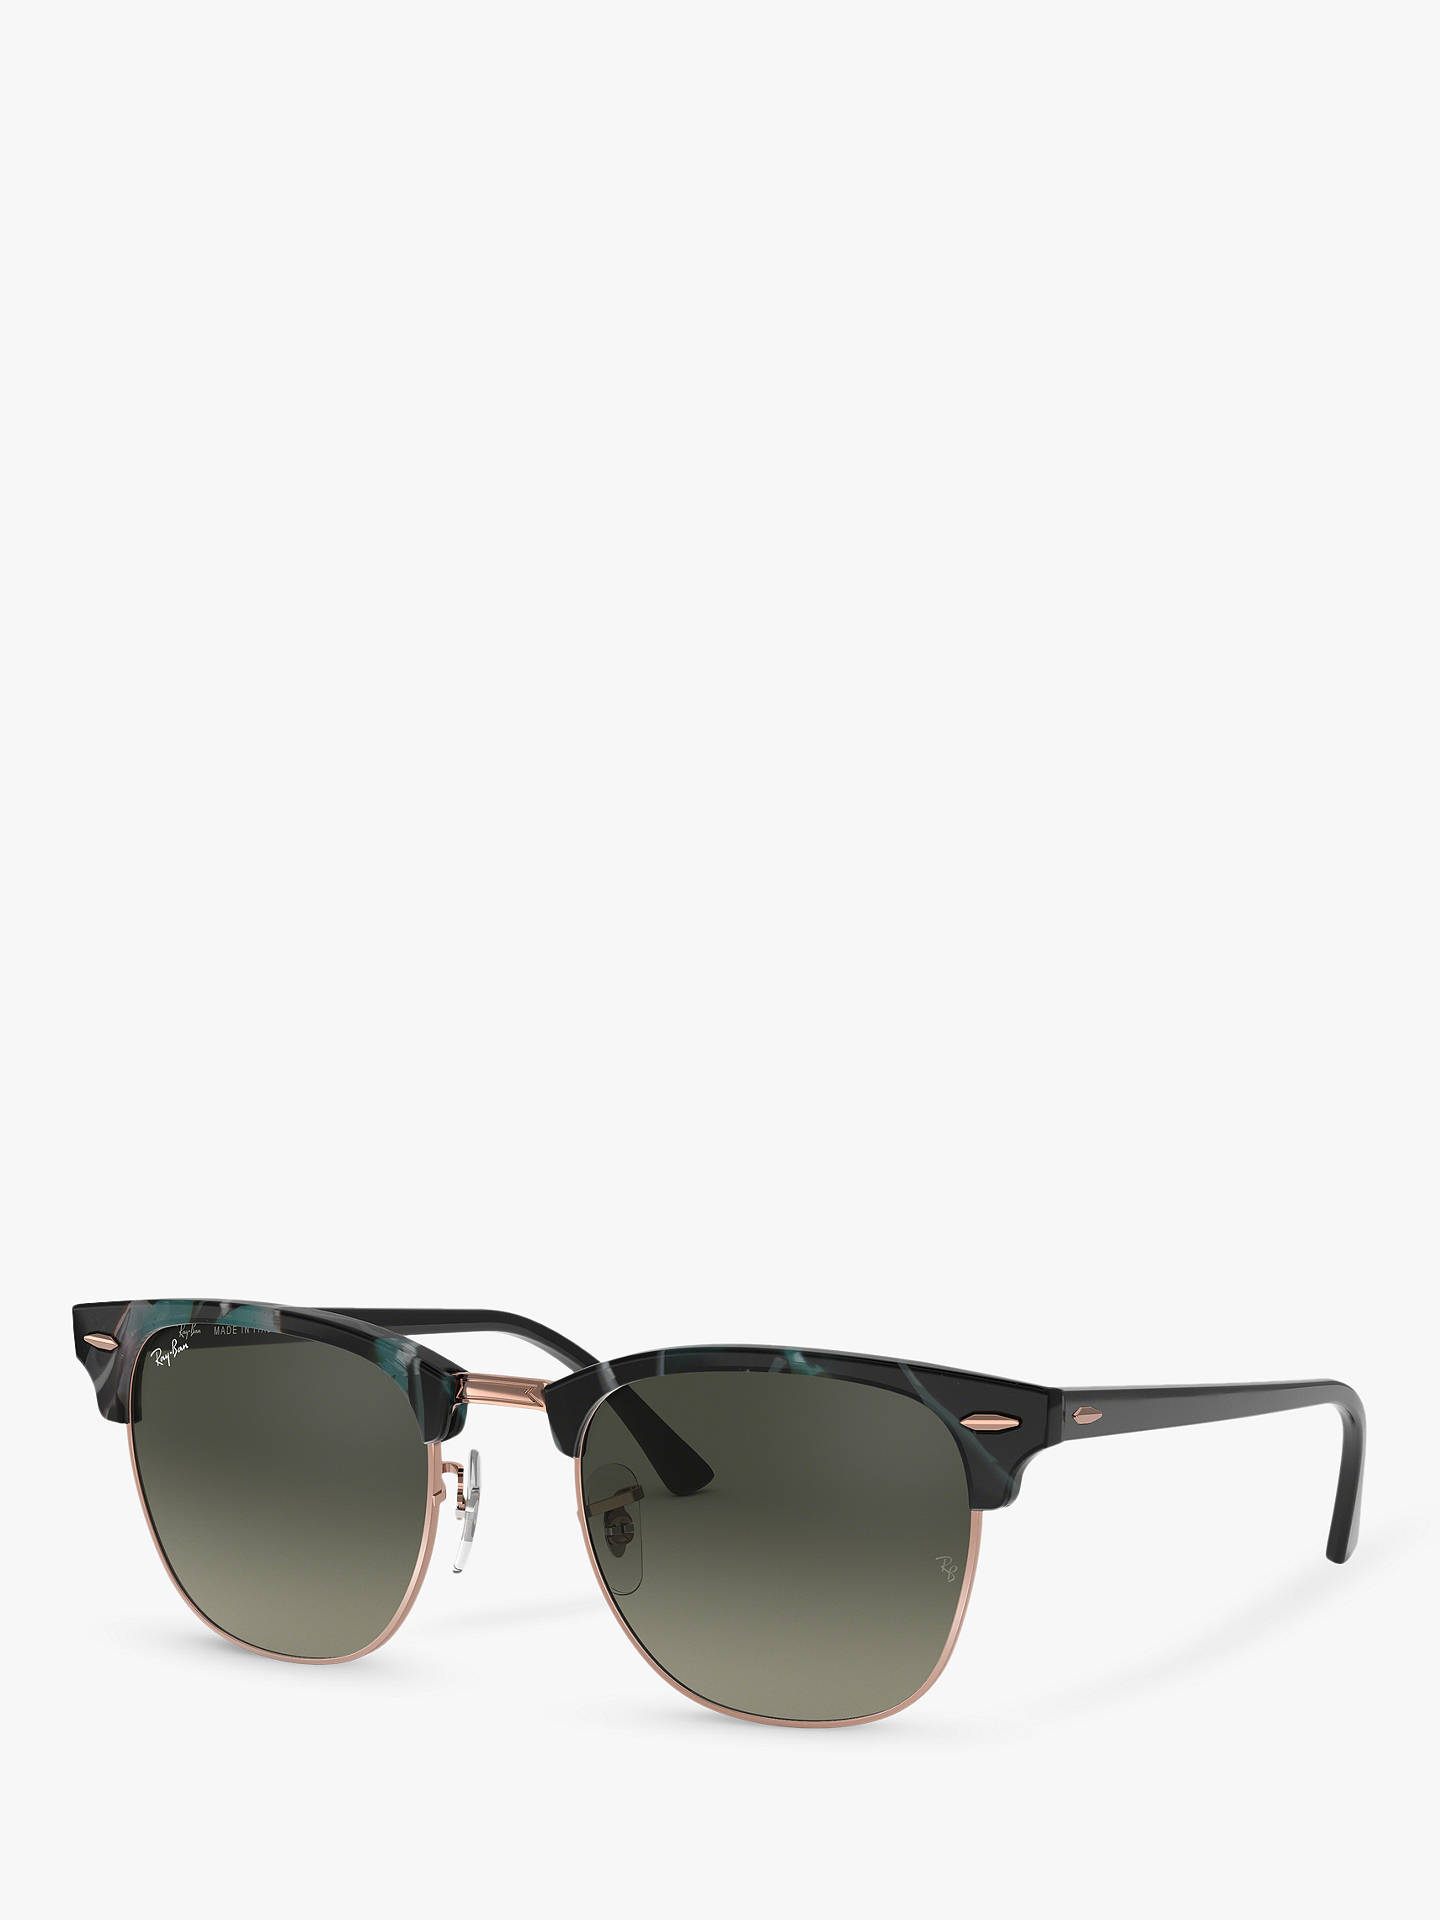 d4142152a6b Buy Ray-Ban RB3016 Clubmaster Square Sunglasses